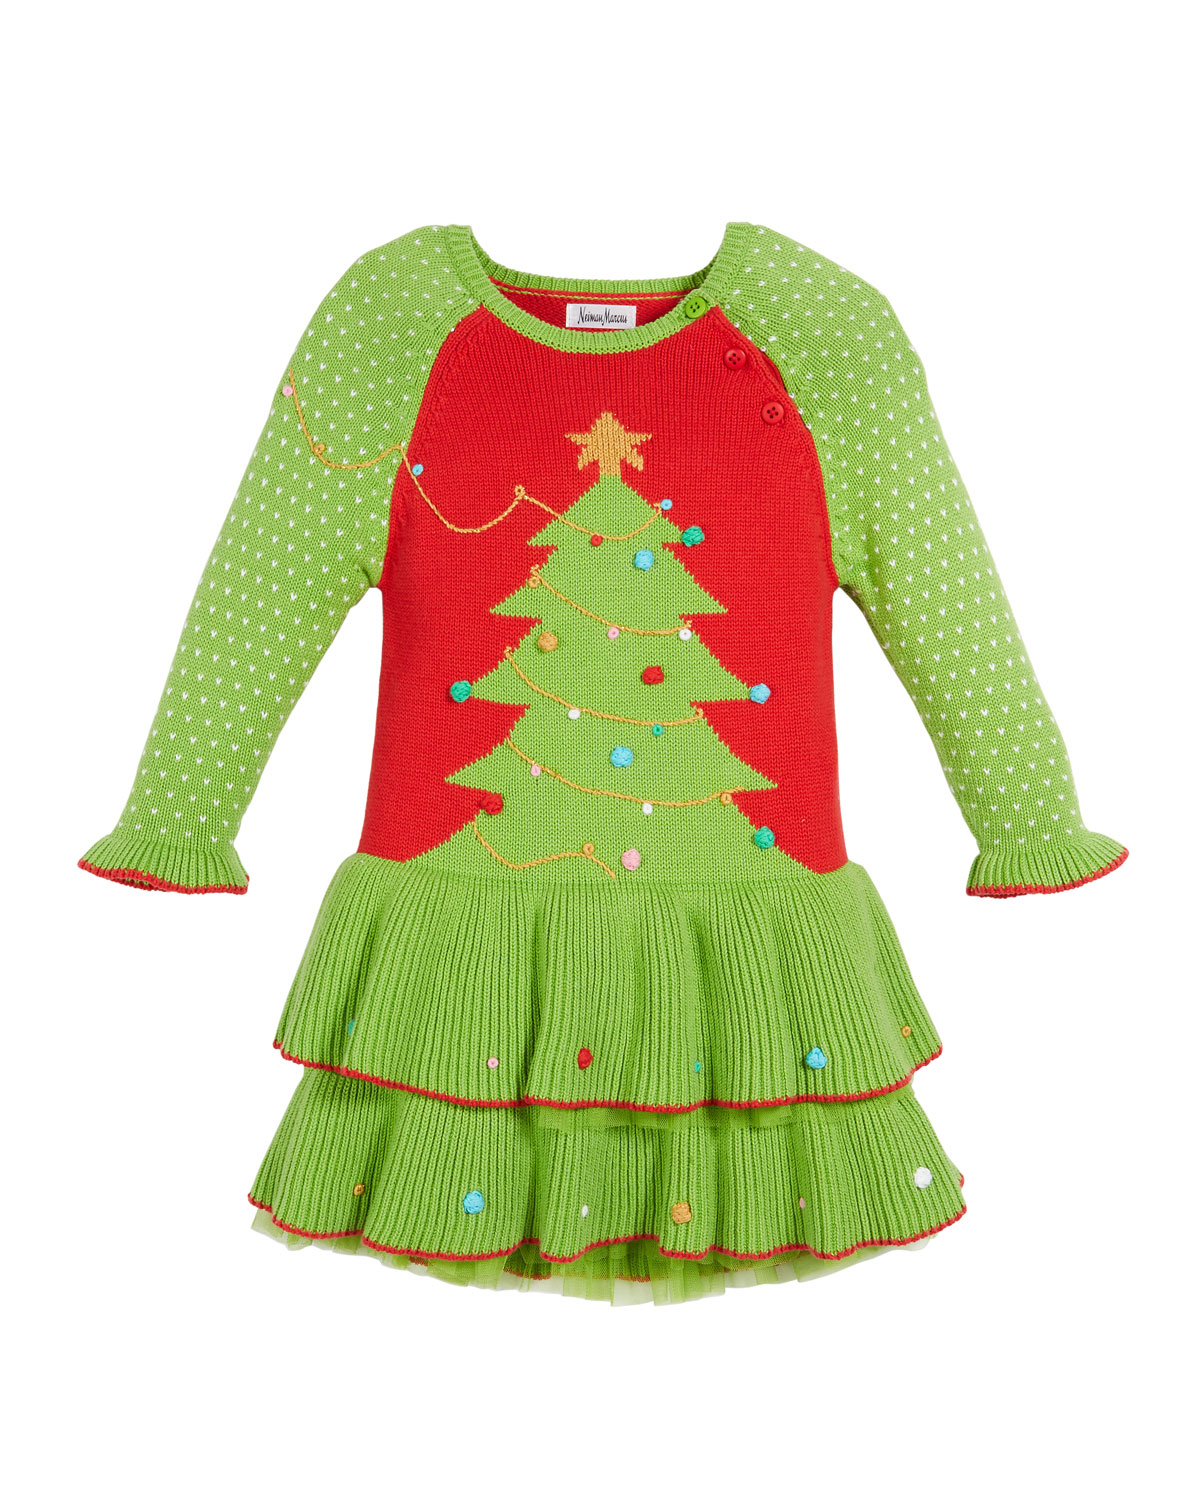 knit christmas tree dress size 12m 5 - Christmas Tree Dress